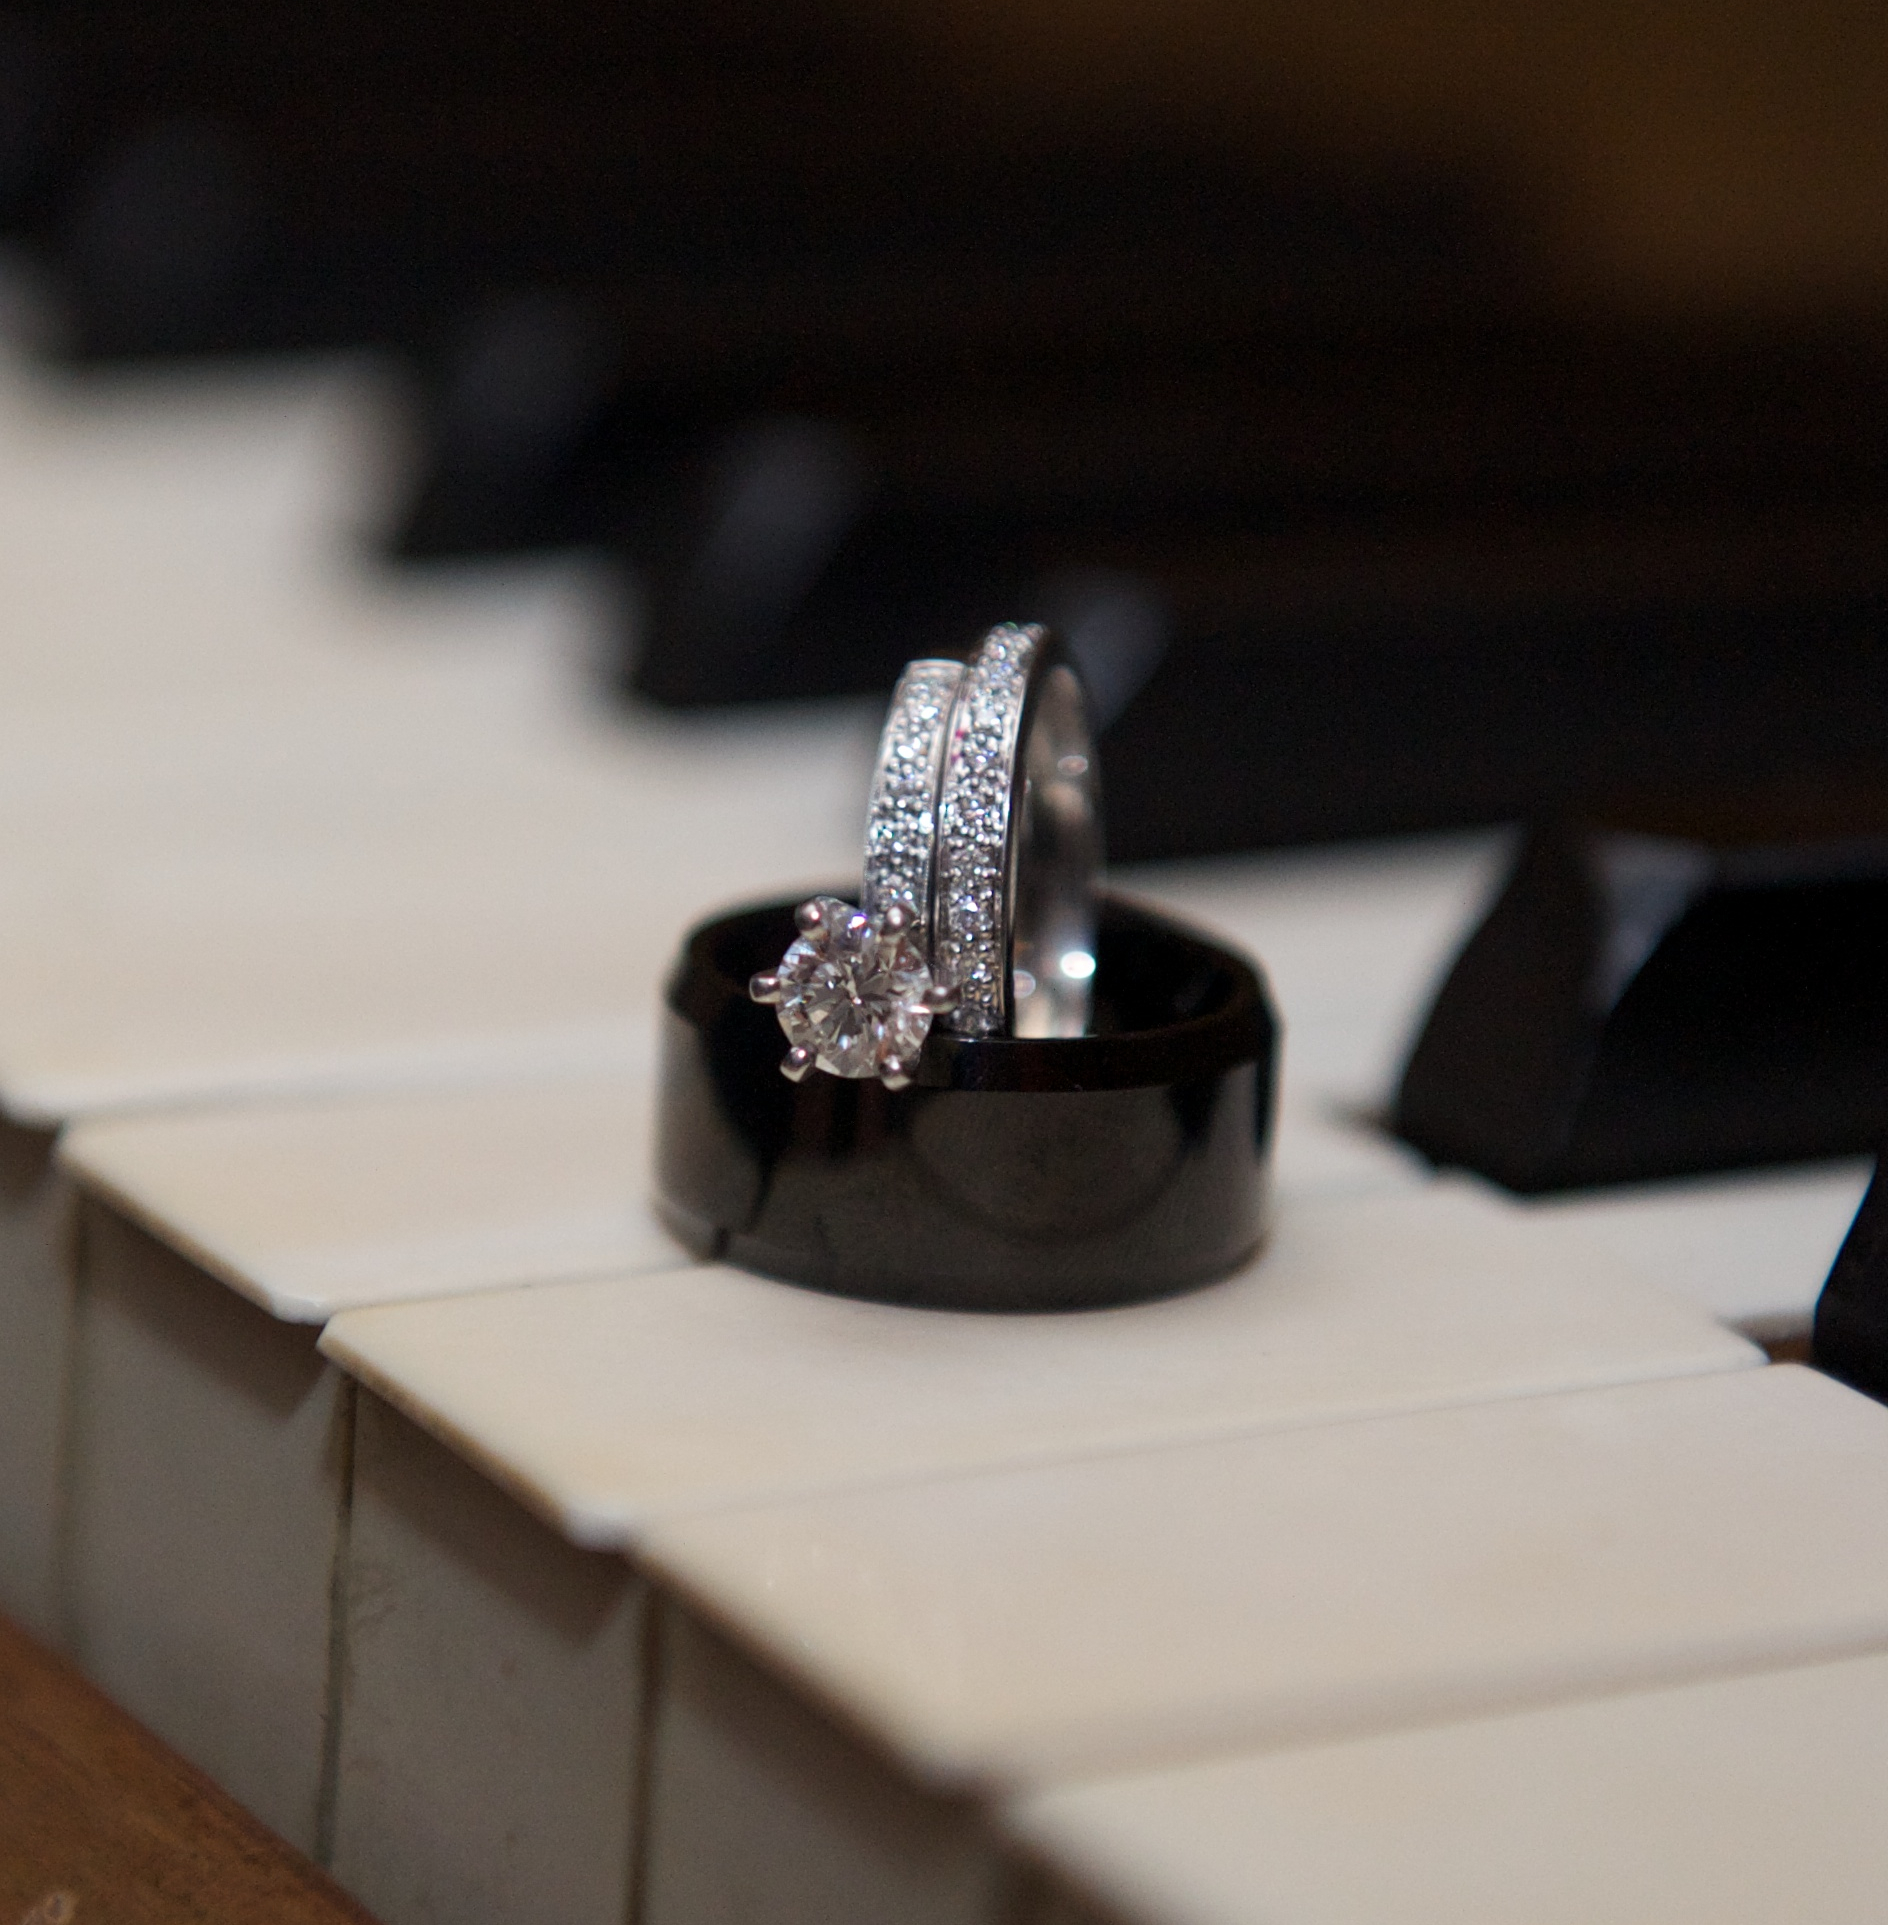 Engagement Ring on the Piano